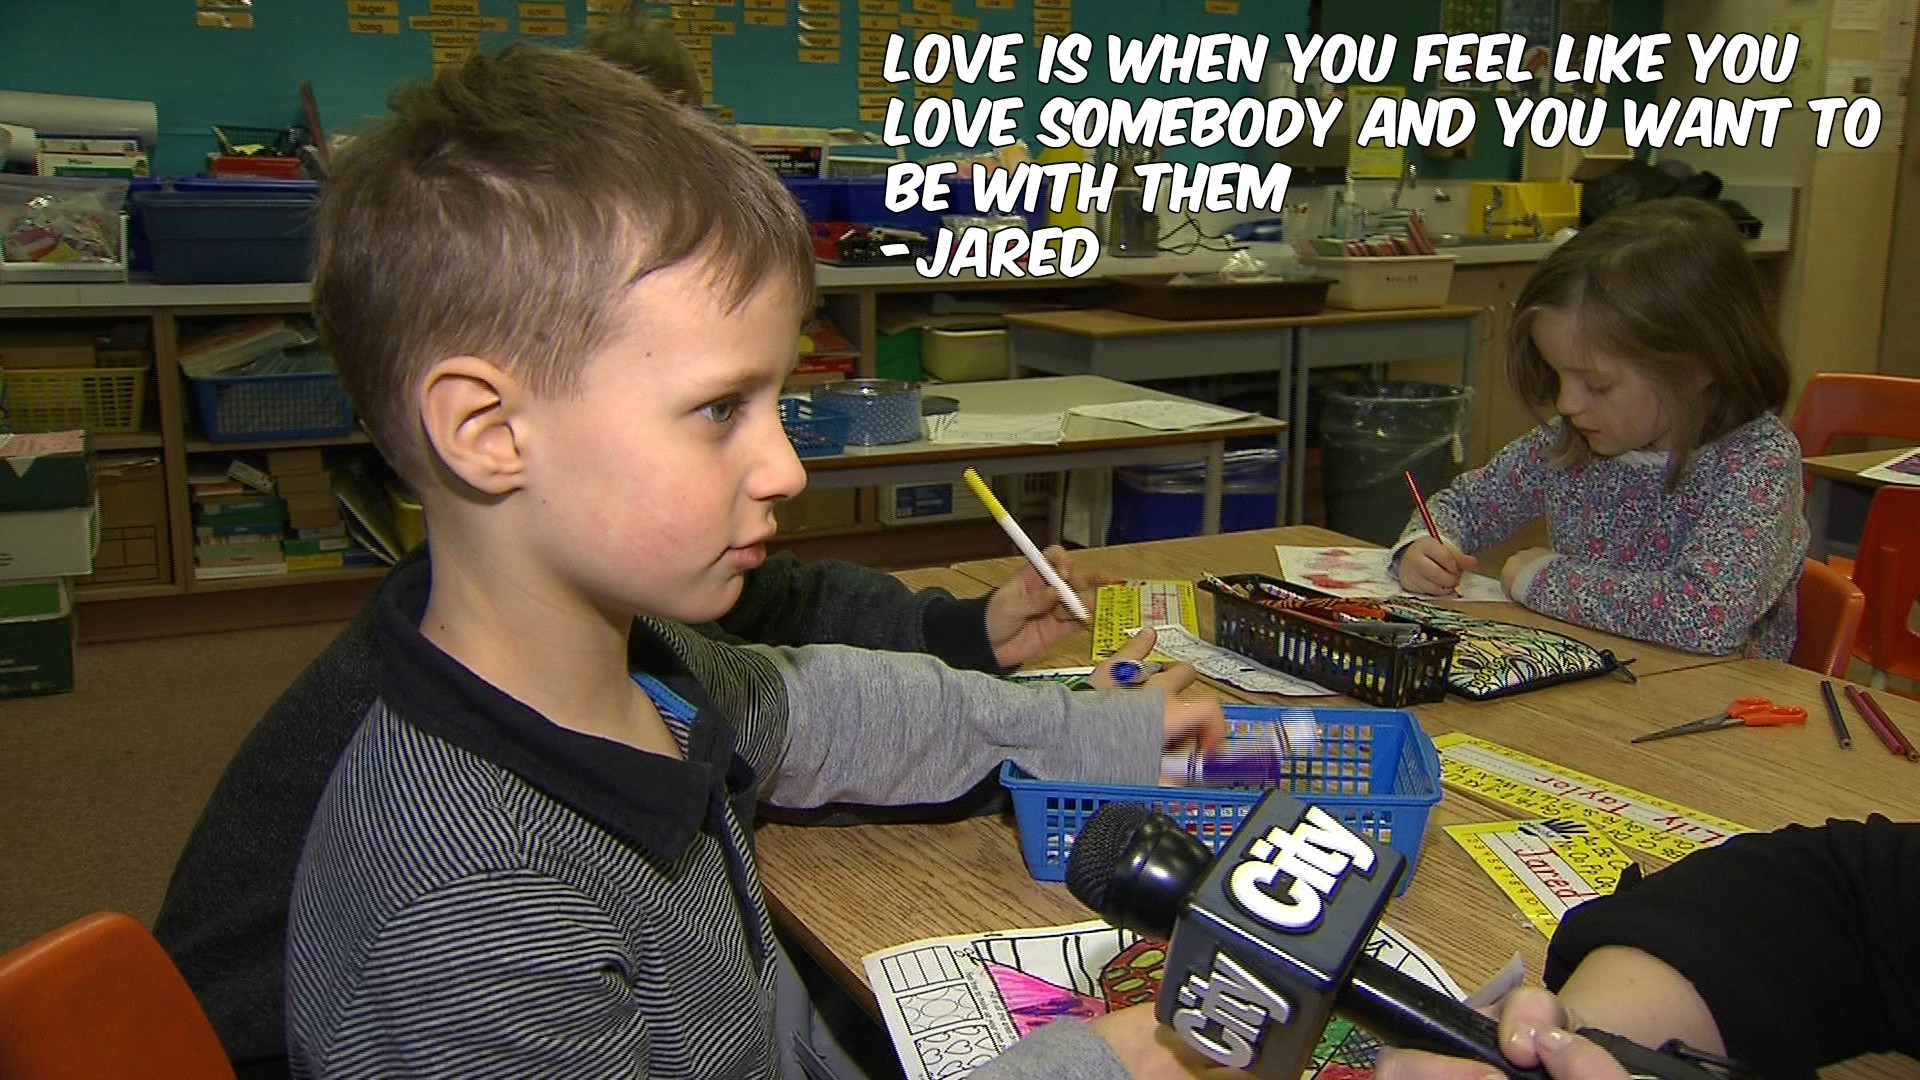 What is love? Jared, a Grade 1 student, defines it for CityNews reporter Shauna Hunt on Feb. 2, 2017. CITYNEWS